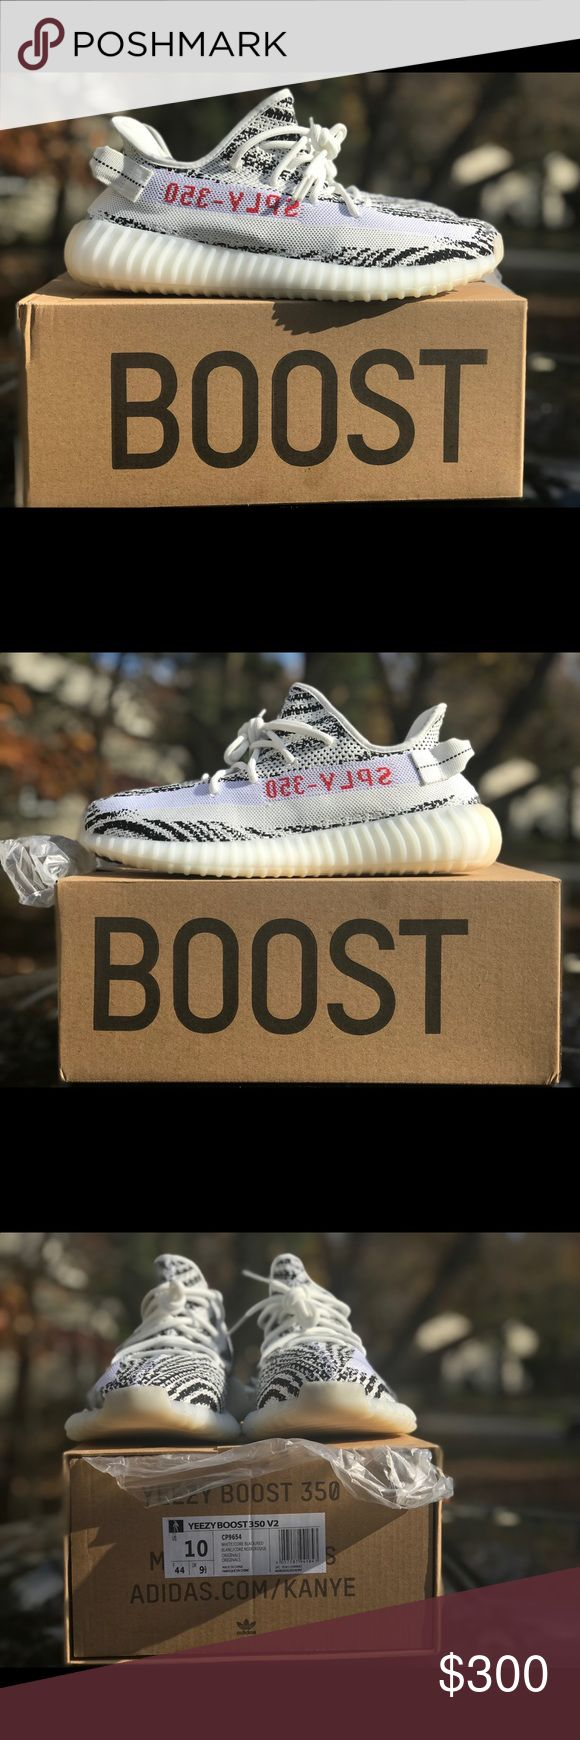 Adidas Yeezy Boost 350 V2 Zebra U.S. Men's Size 10 Like new condition. Comes with box. Only worn outdoors a couple times.   They were a Gift from an ex, so I no longer want them around.   Really comfortable.   U.S. size 10.   This size and colorway are $800 on the Stadium Goods website. 💡   This is a great price for a great fashionable shoe. Don't miss out.  Pictures were taken outdoors on 11.16.17 with an iPhone 7Plus in portrait mode.  Hit me up with any questions you might have. 🤙🏽…